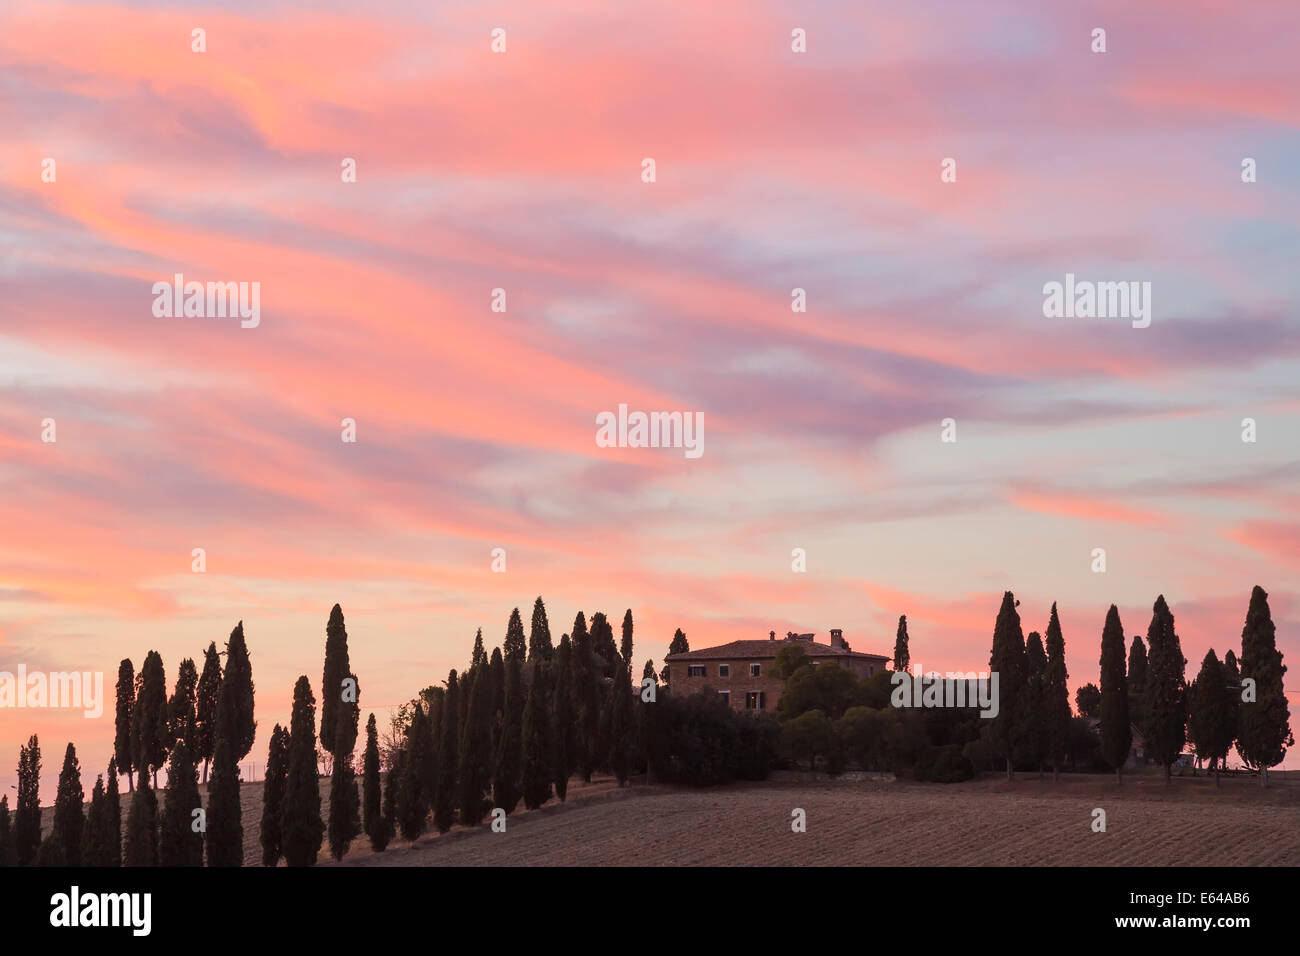 Farmhouse and cypress trees at sunset, Tuscany, Italy - Stock Image